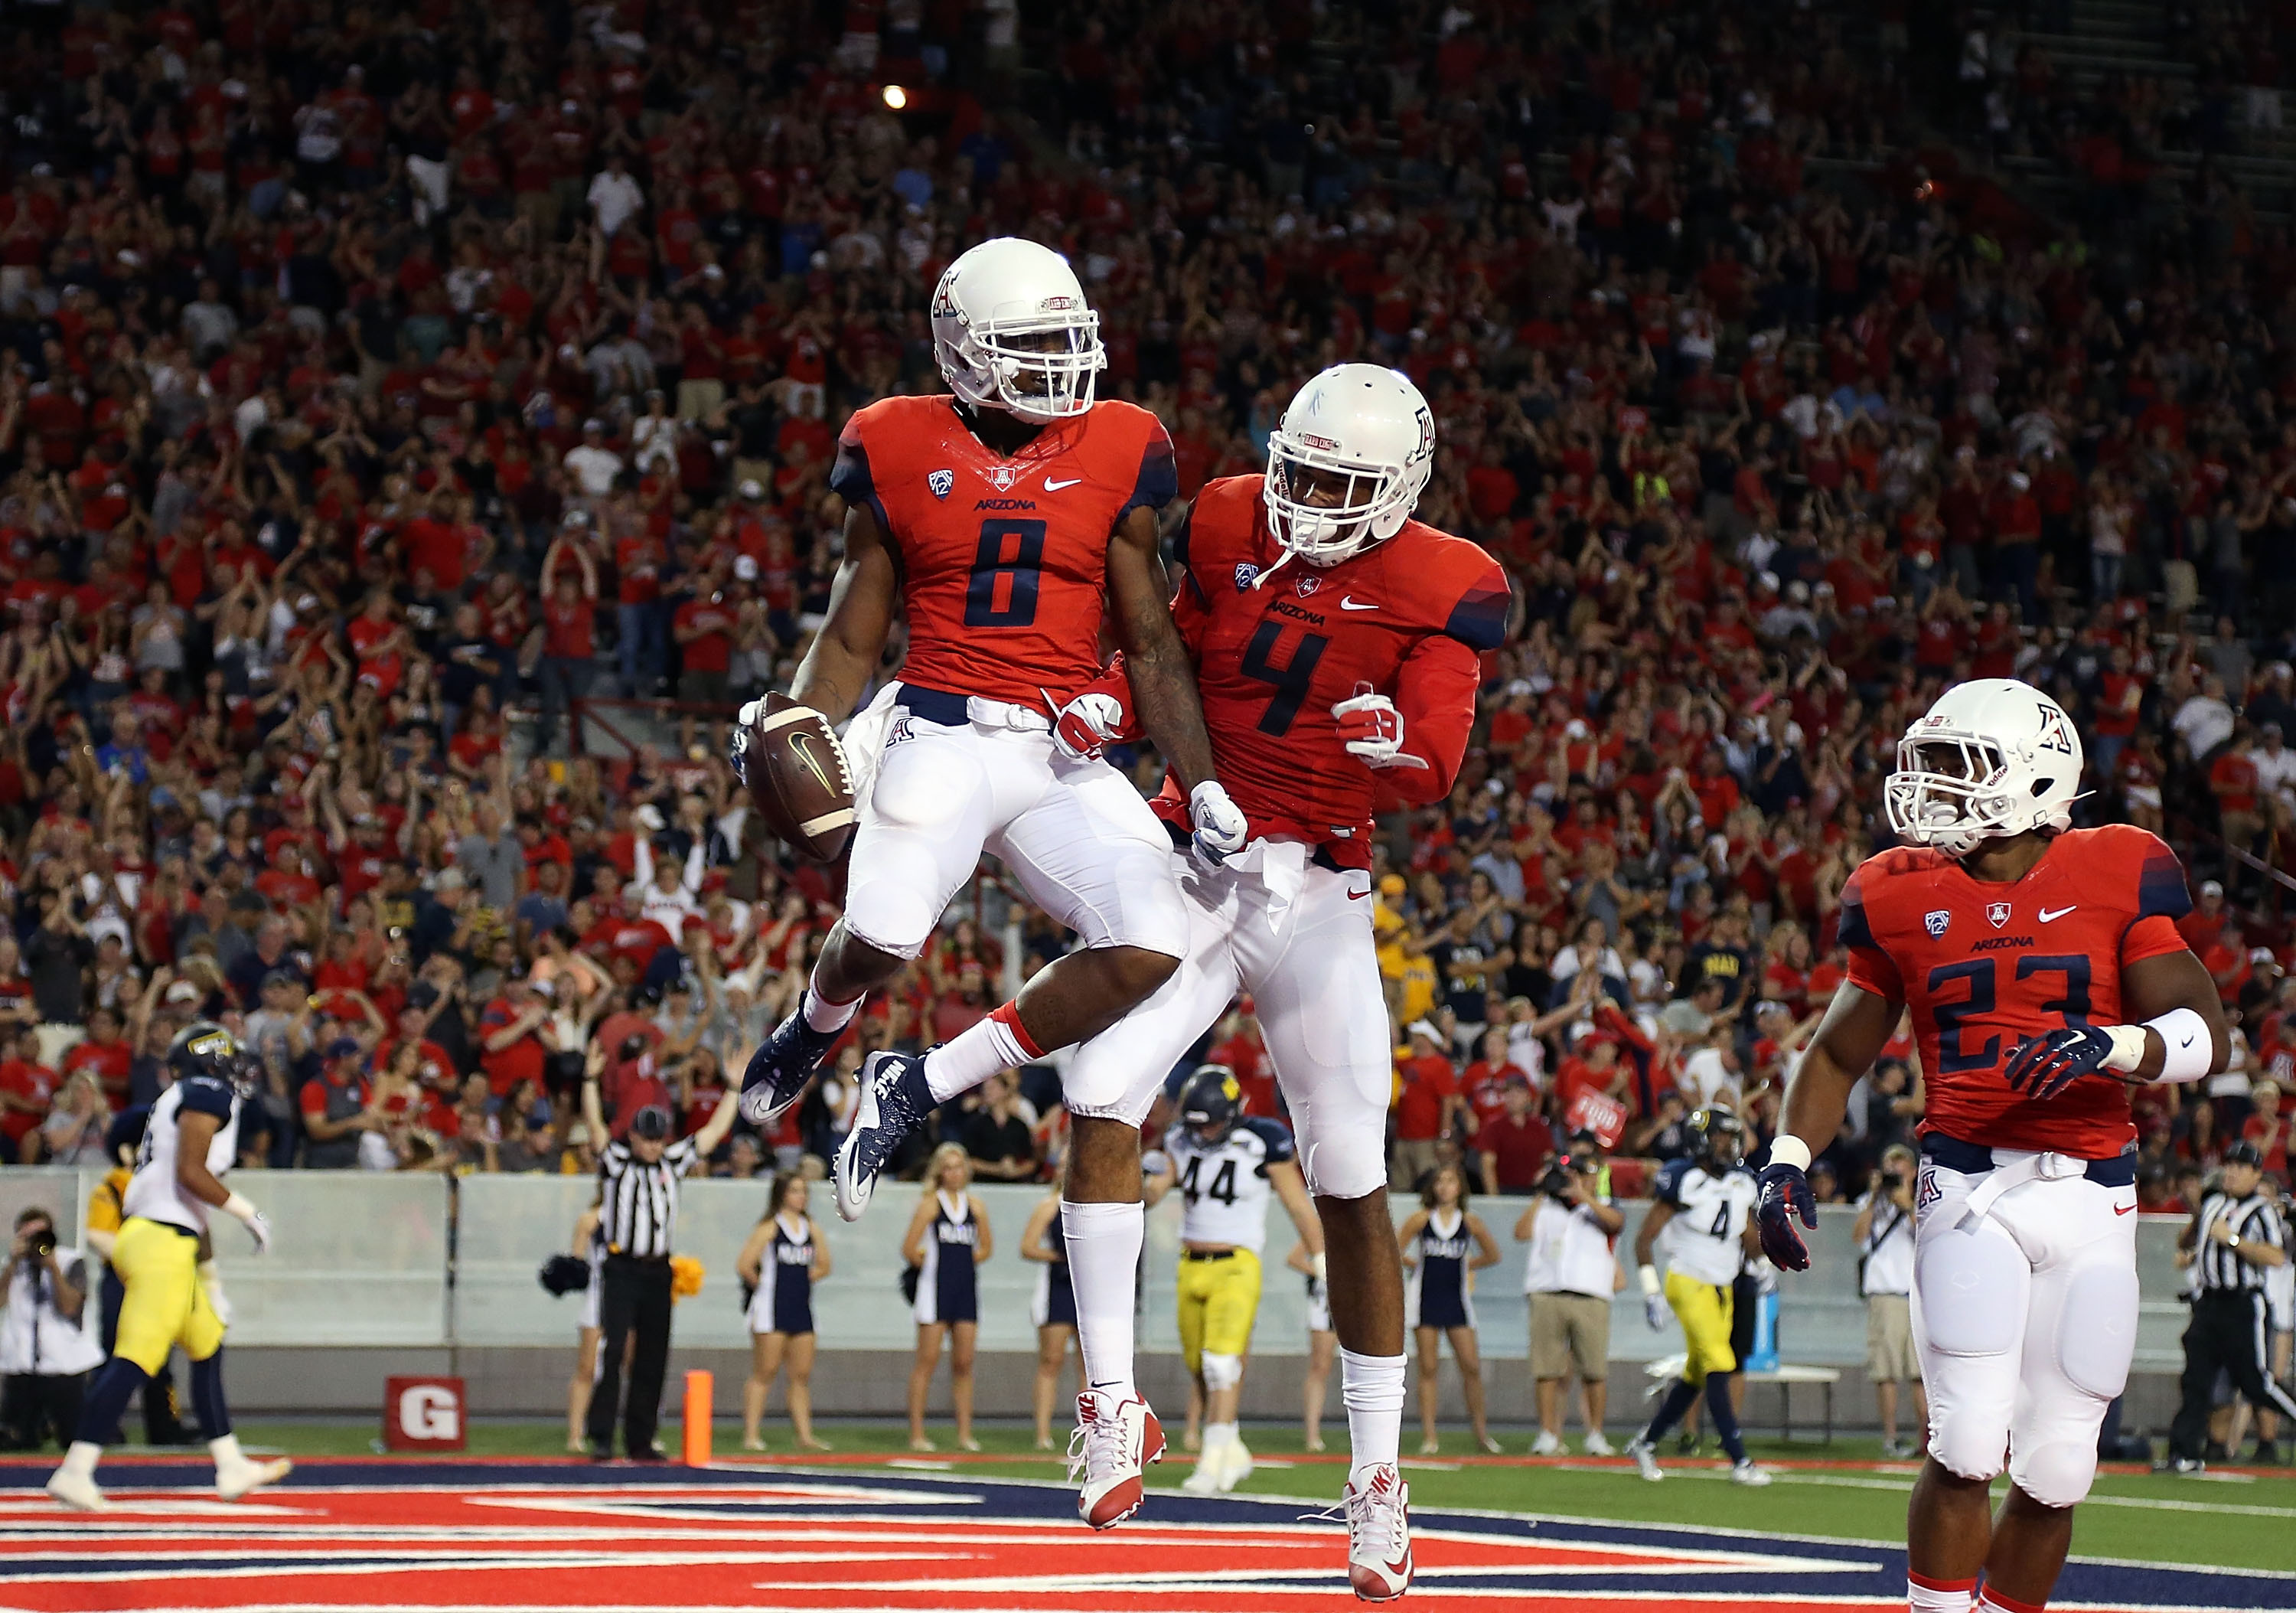 (Source) U of A's alternate home uniforms worn in a 77-13 win over Northern  Arizona.